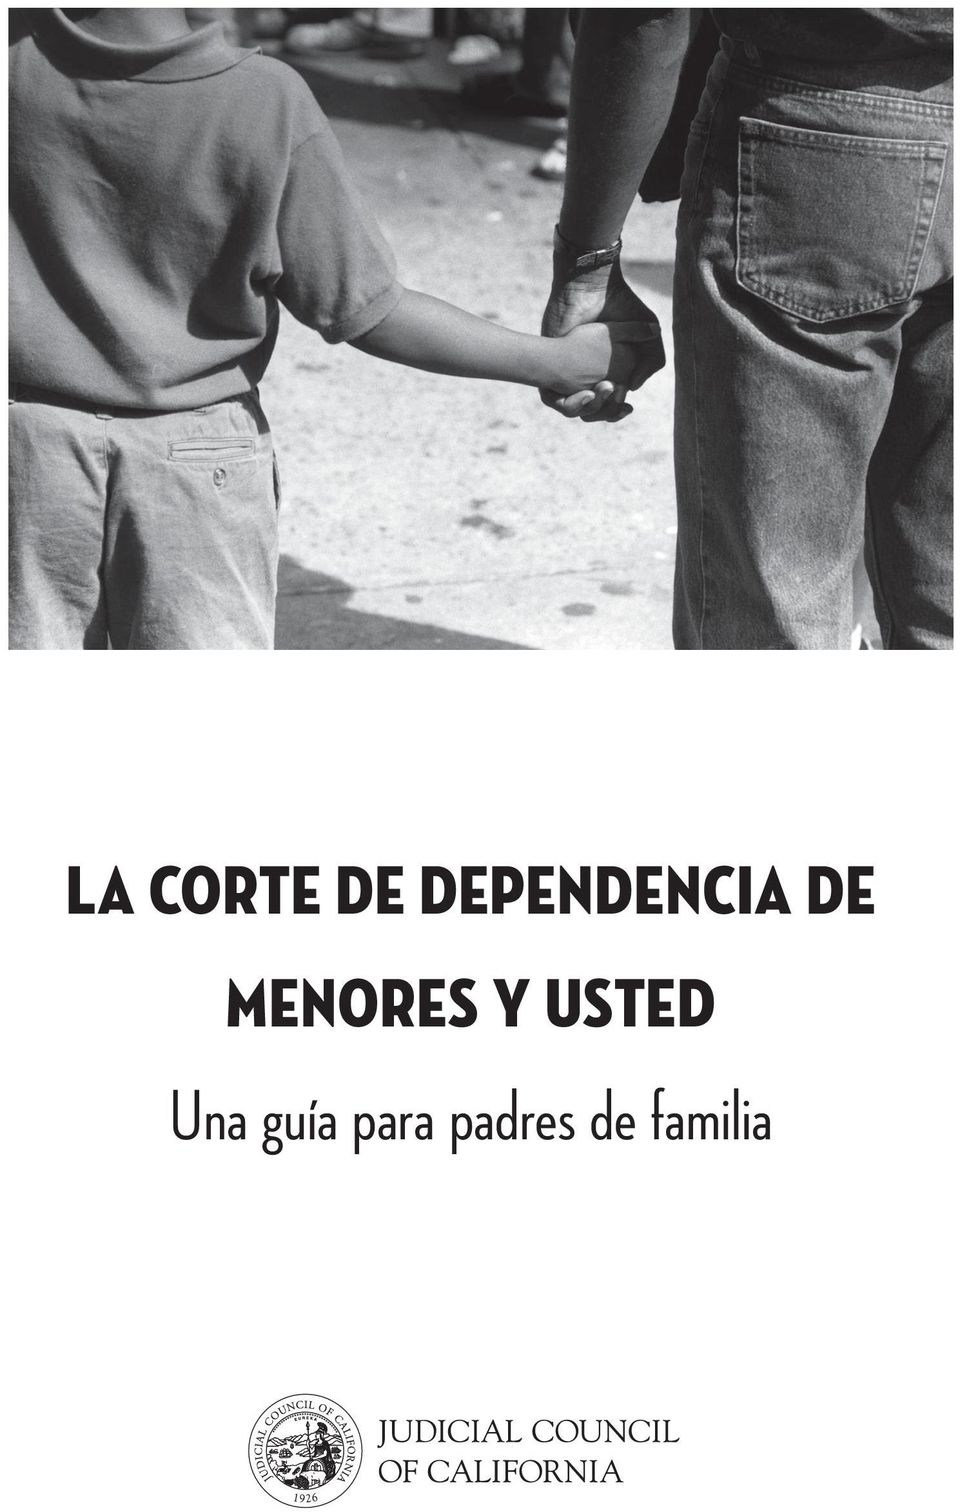 MENORES Y USTED